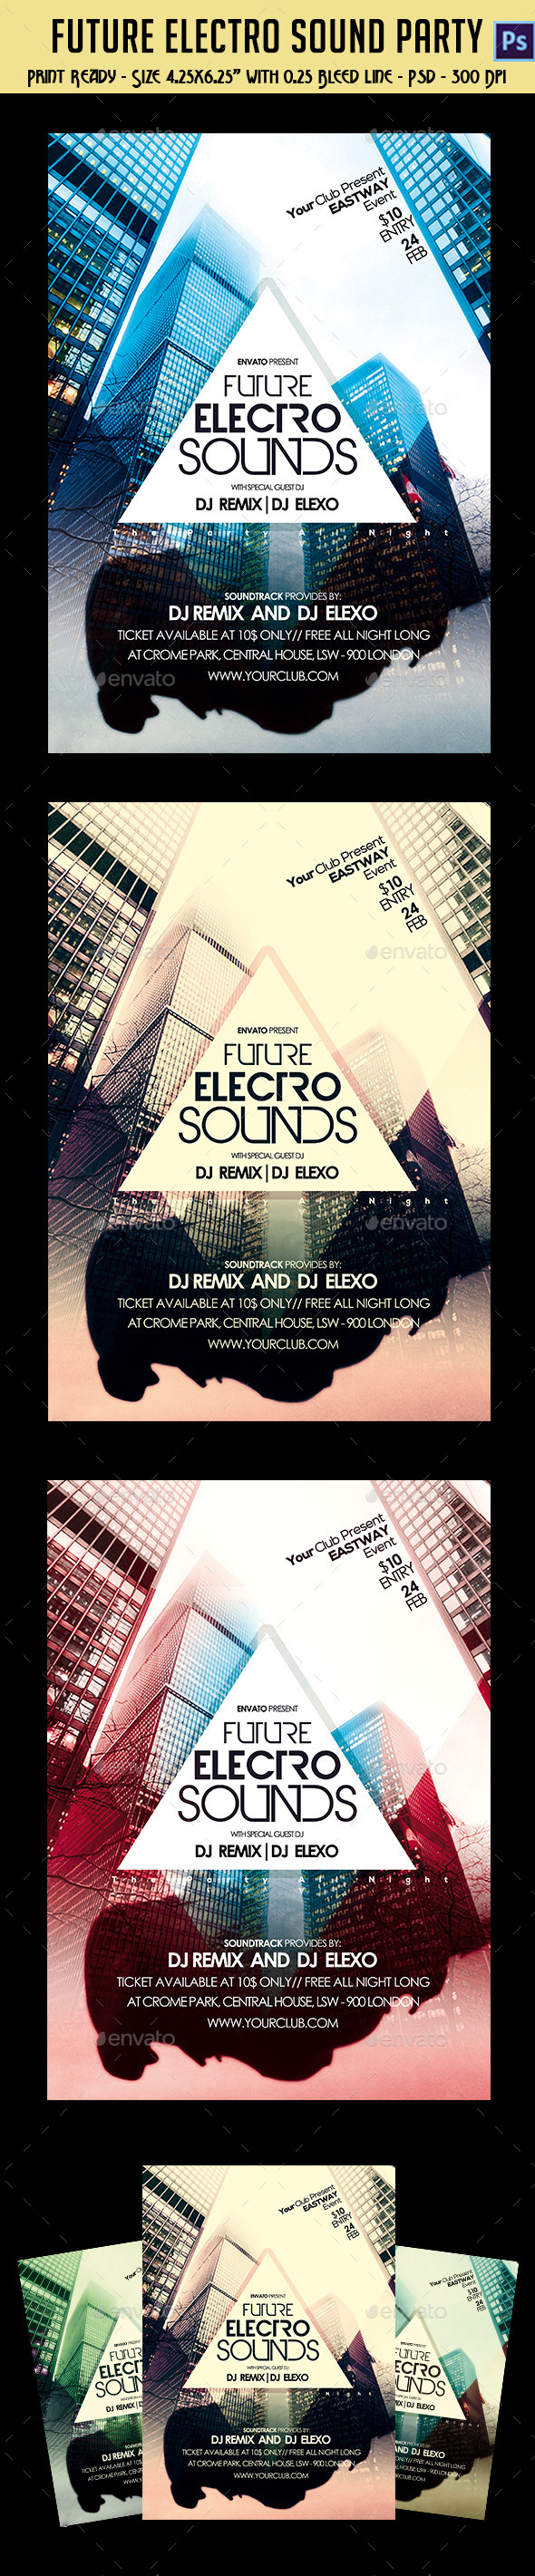 Future Electro Sounds Party Flyer - Clubs & Parties Events